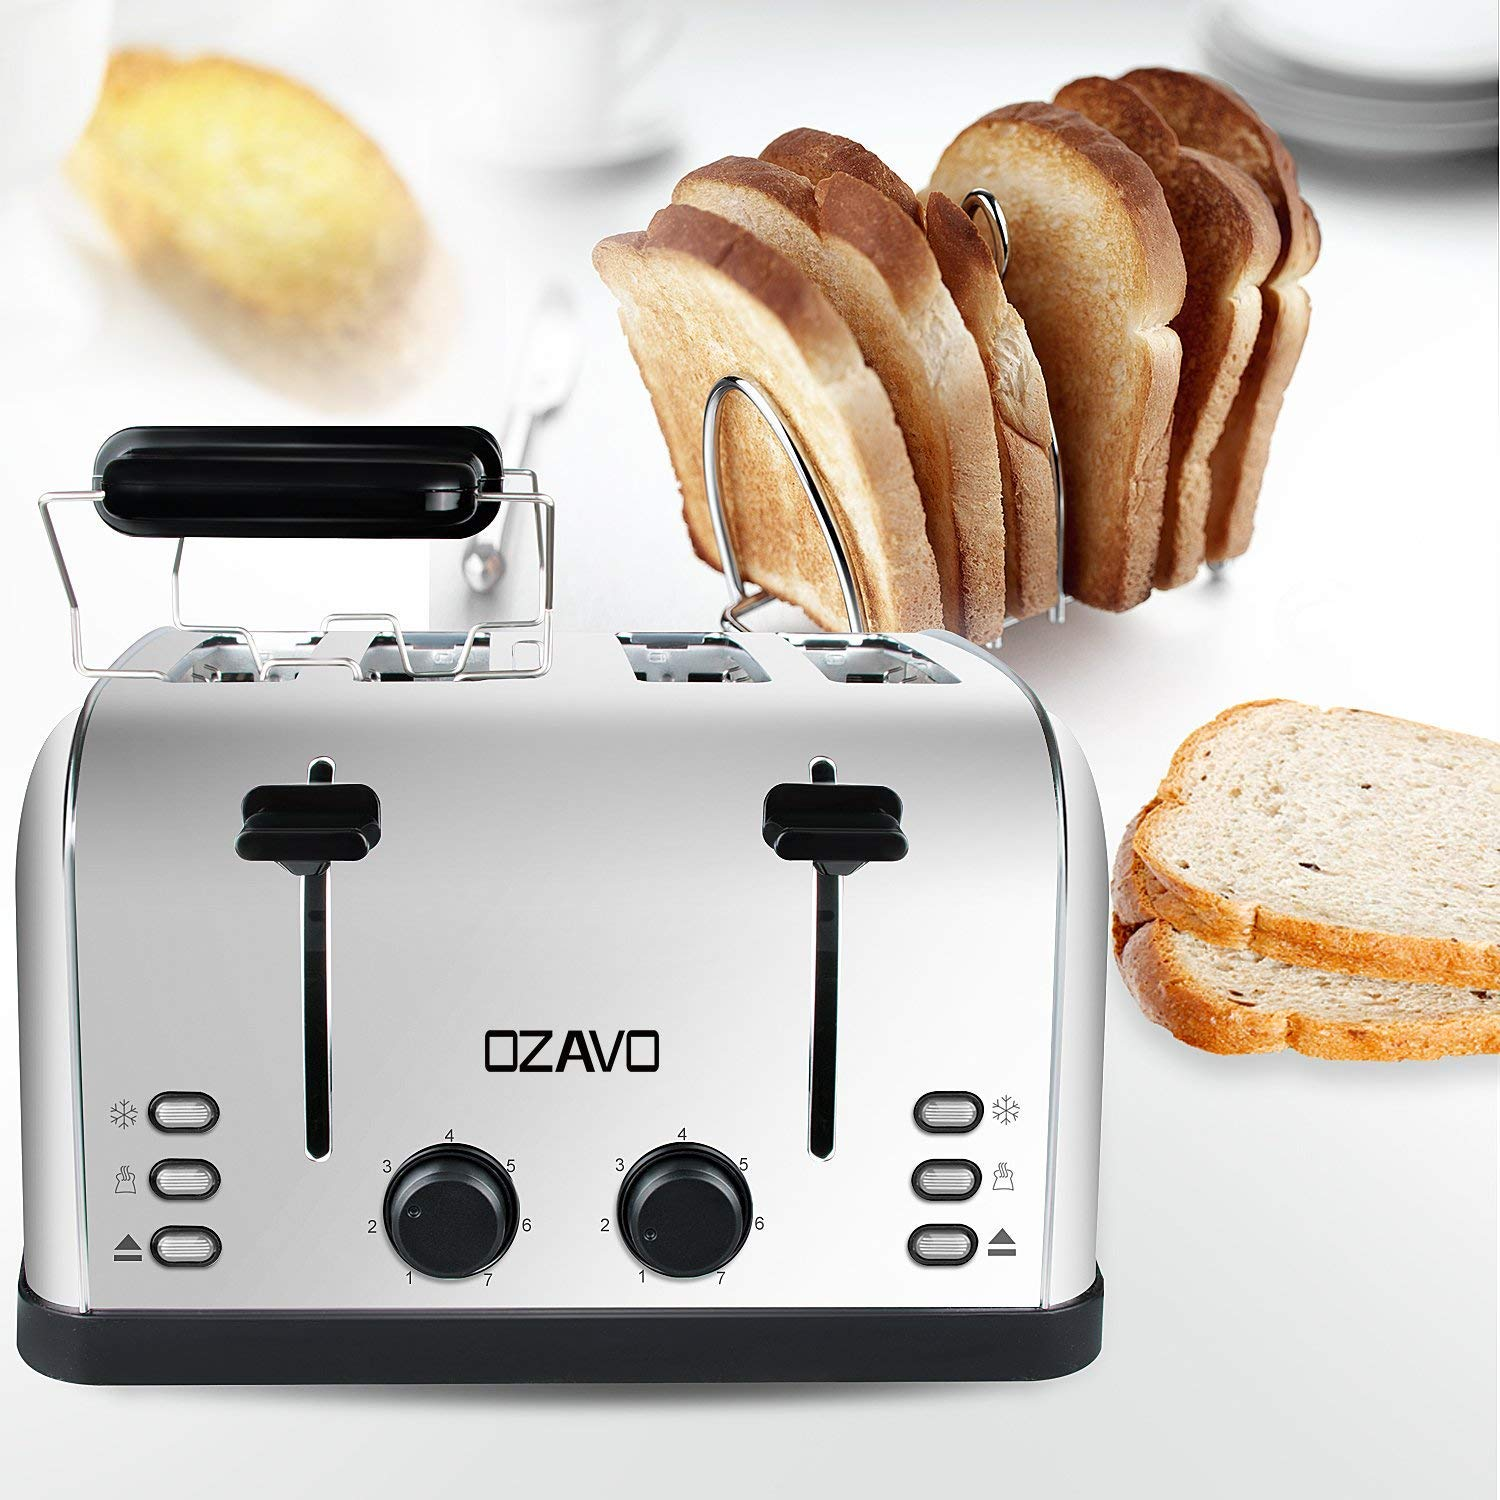 7 Toasting Levels OZAVO Toaster 4 Slices zentri ERFU ktion with Removable Crumb Tray Stainless Steel case Sandwich Heaters 1500 W